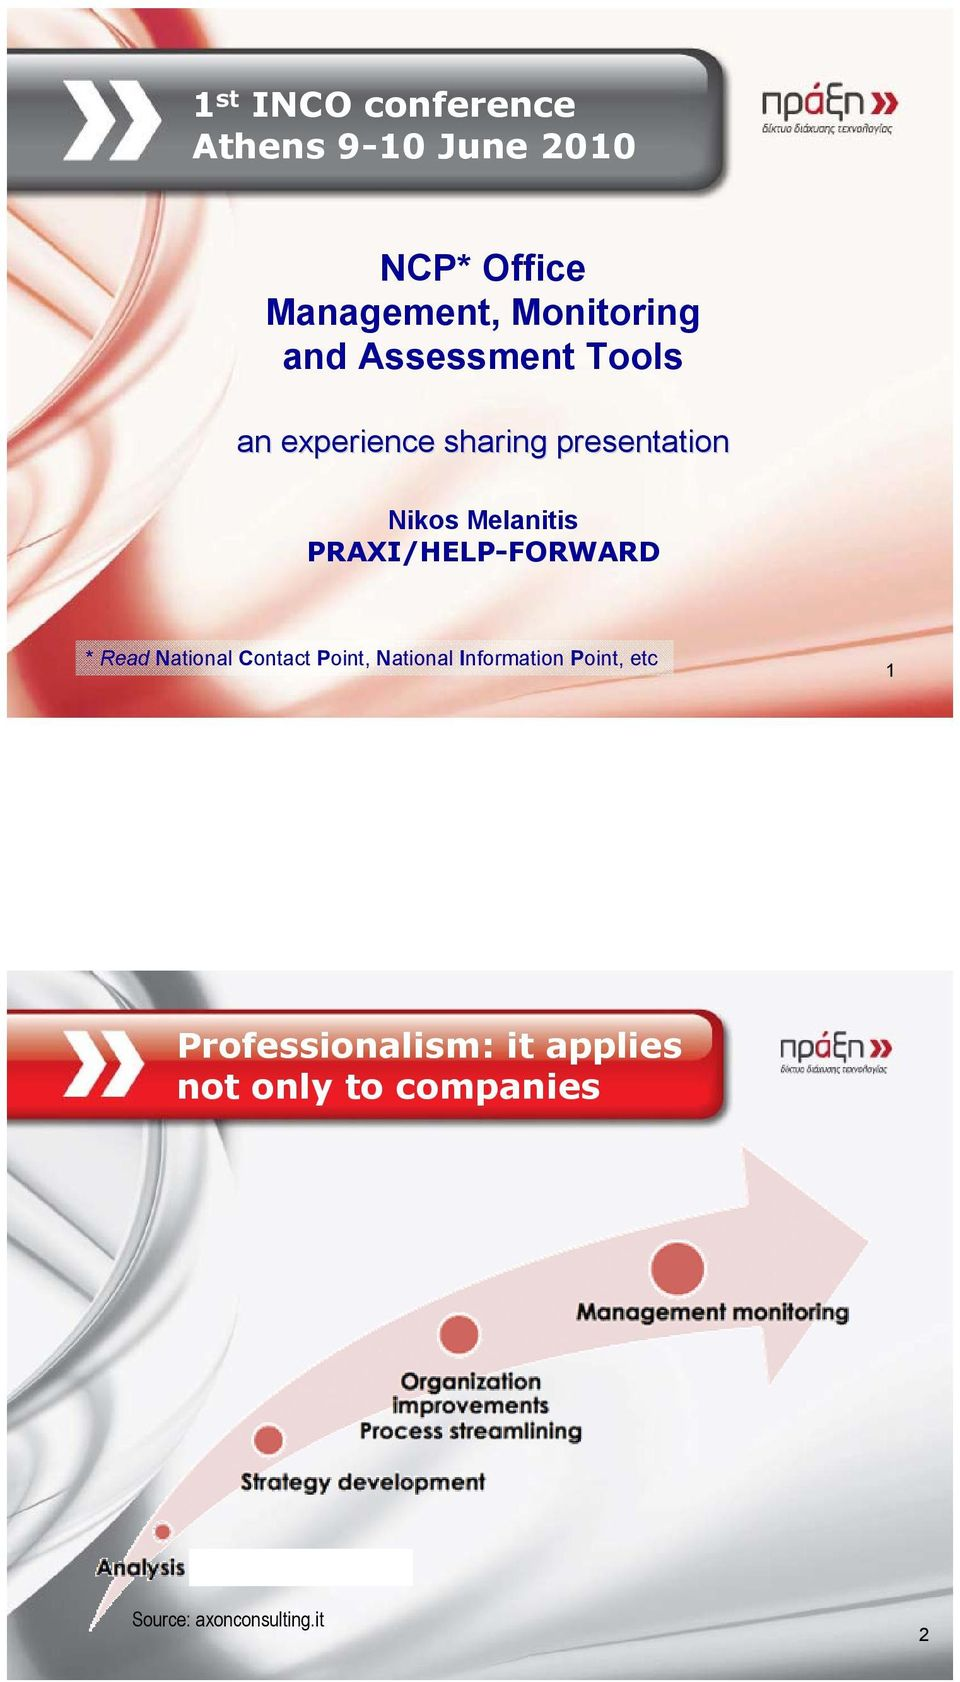 PRAXI/HELP-FORWARD * Read National Contact Point, National Information Point,